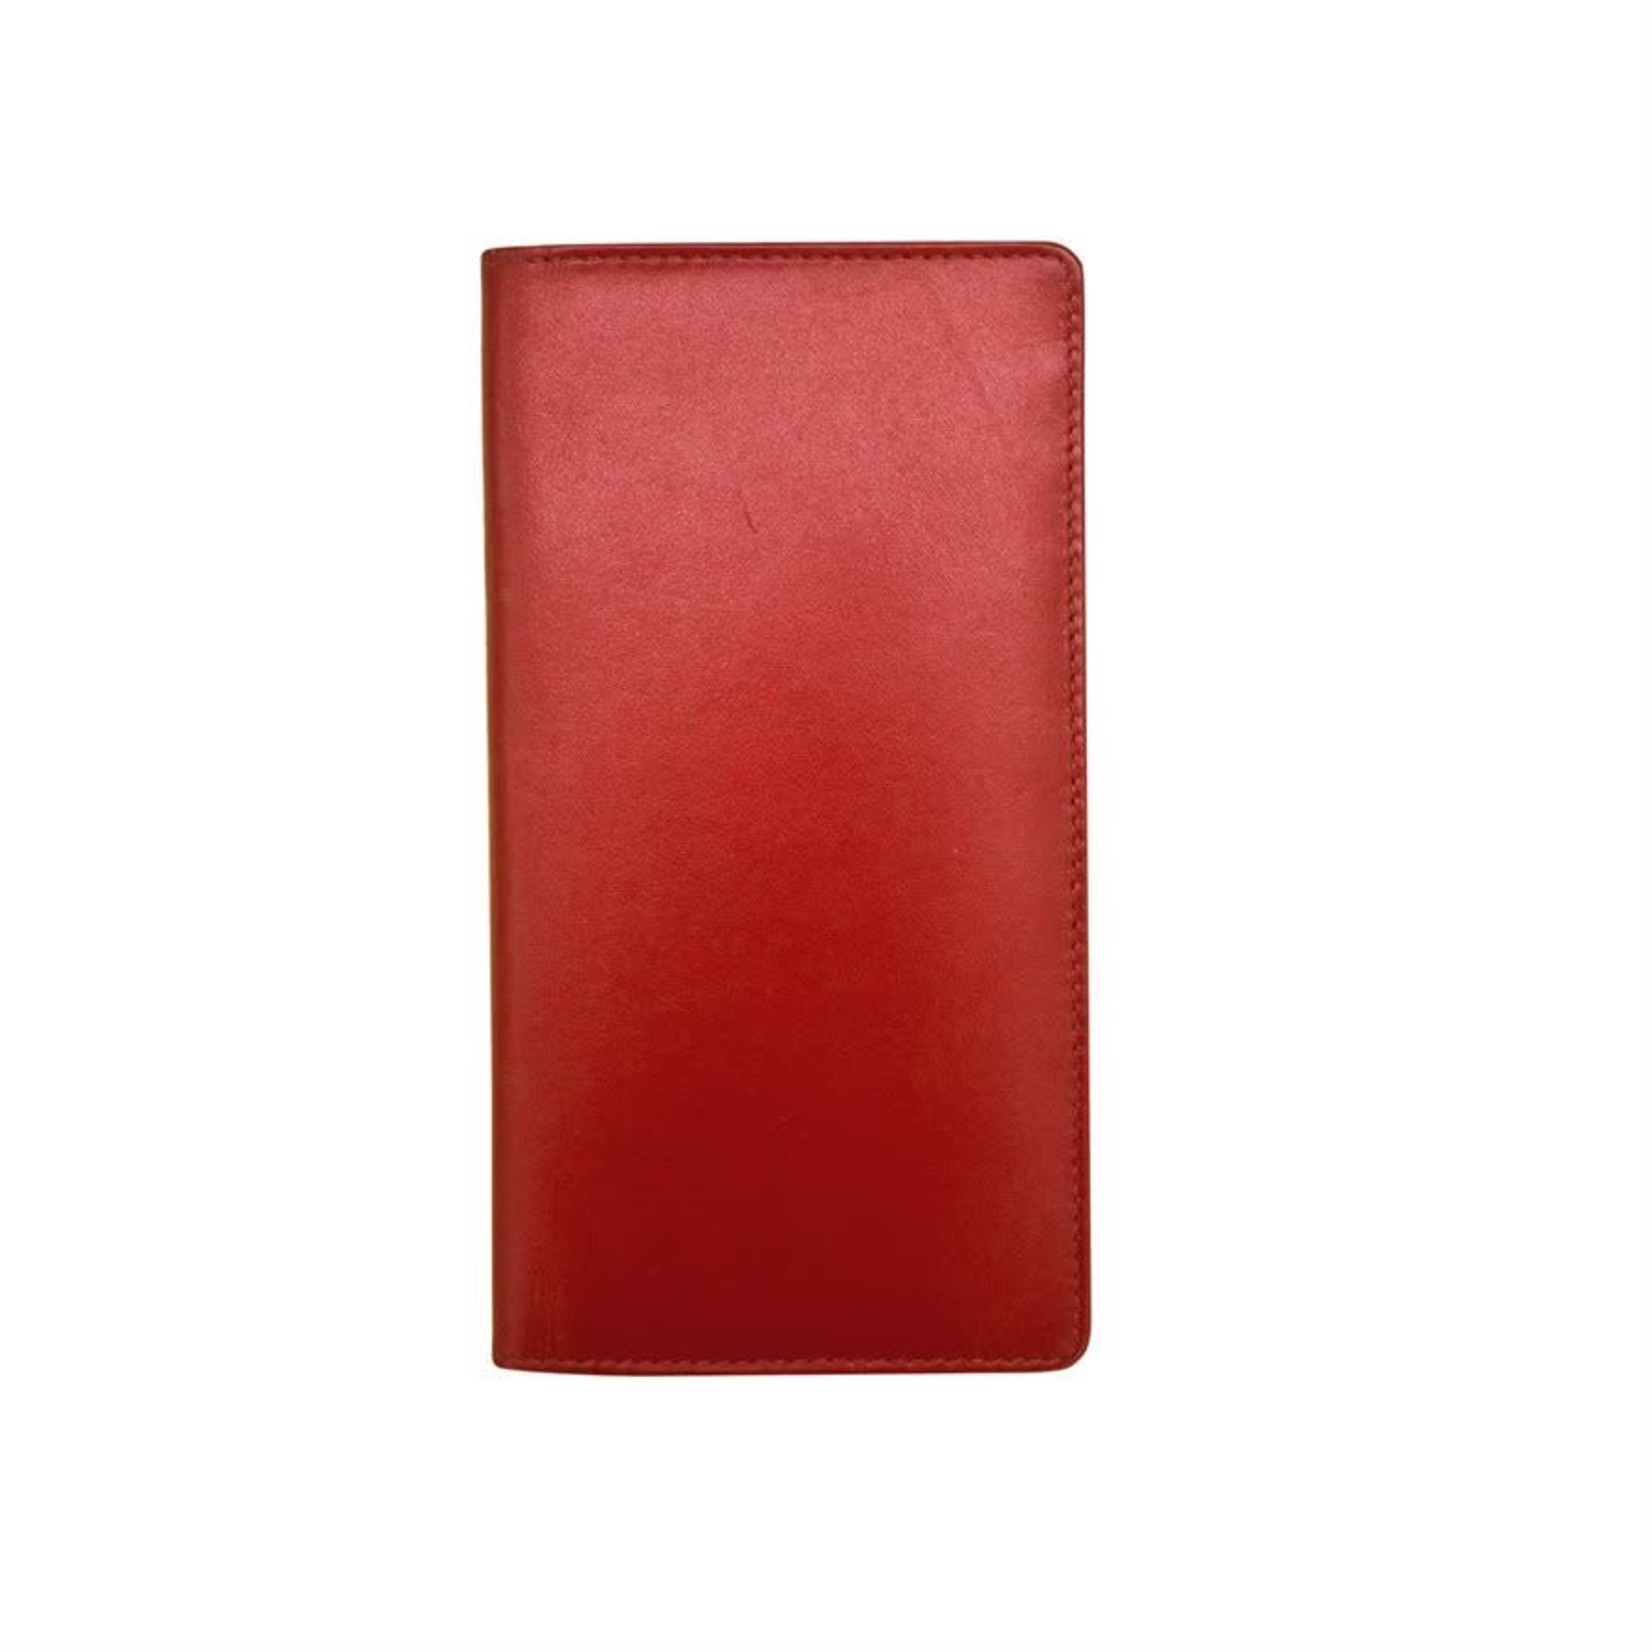 Leather Handbags and Accessories 7406 Red - RFID Checkbook Cover